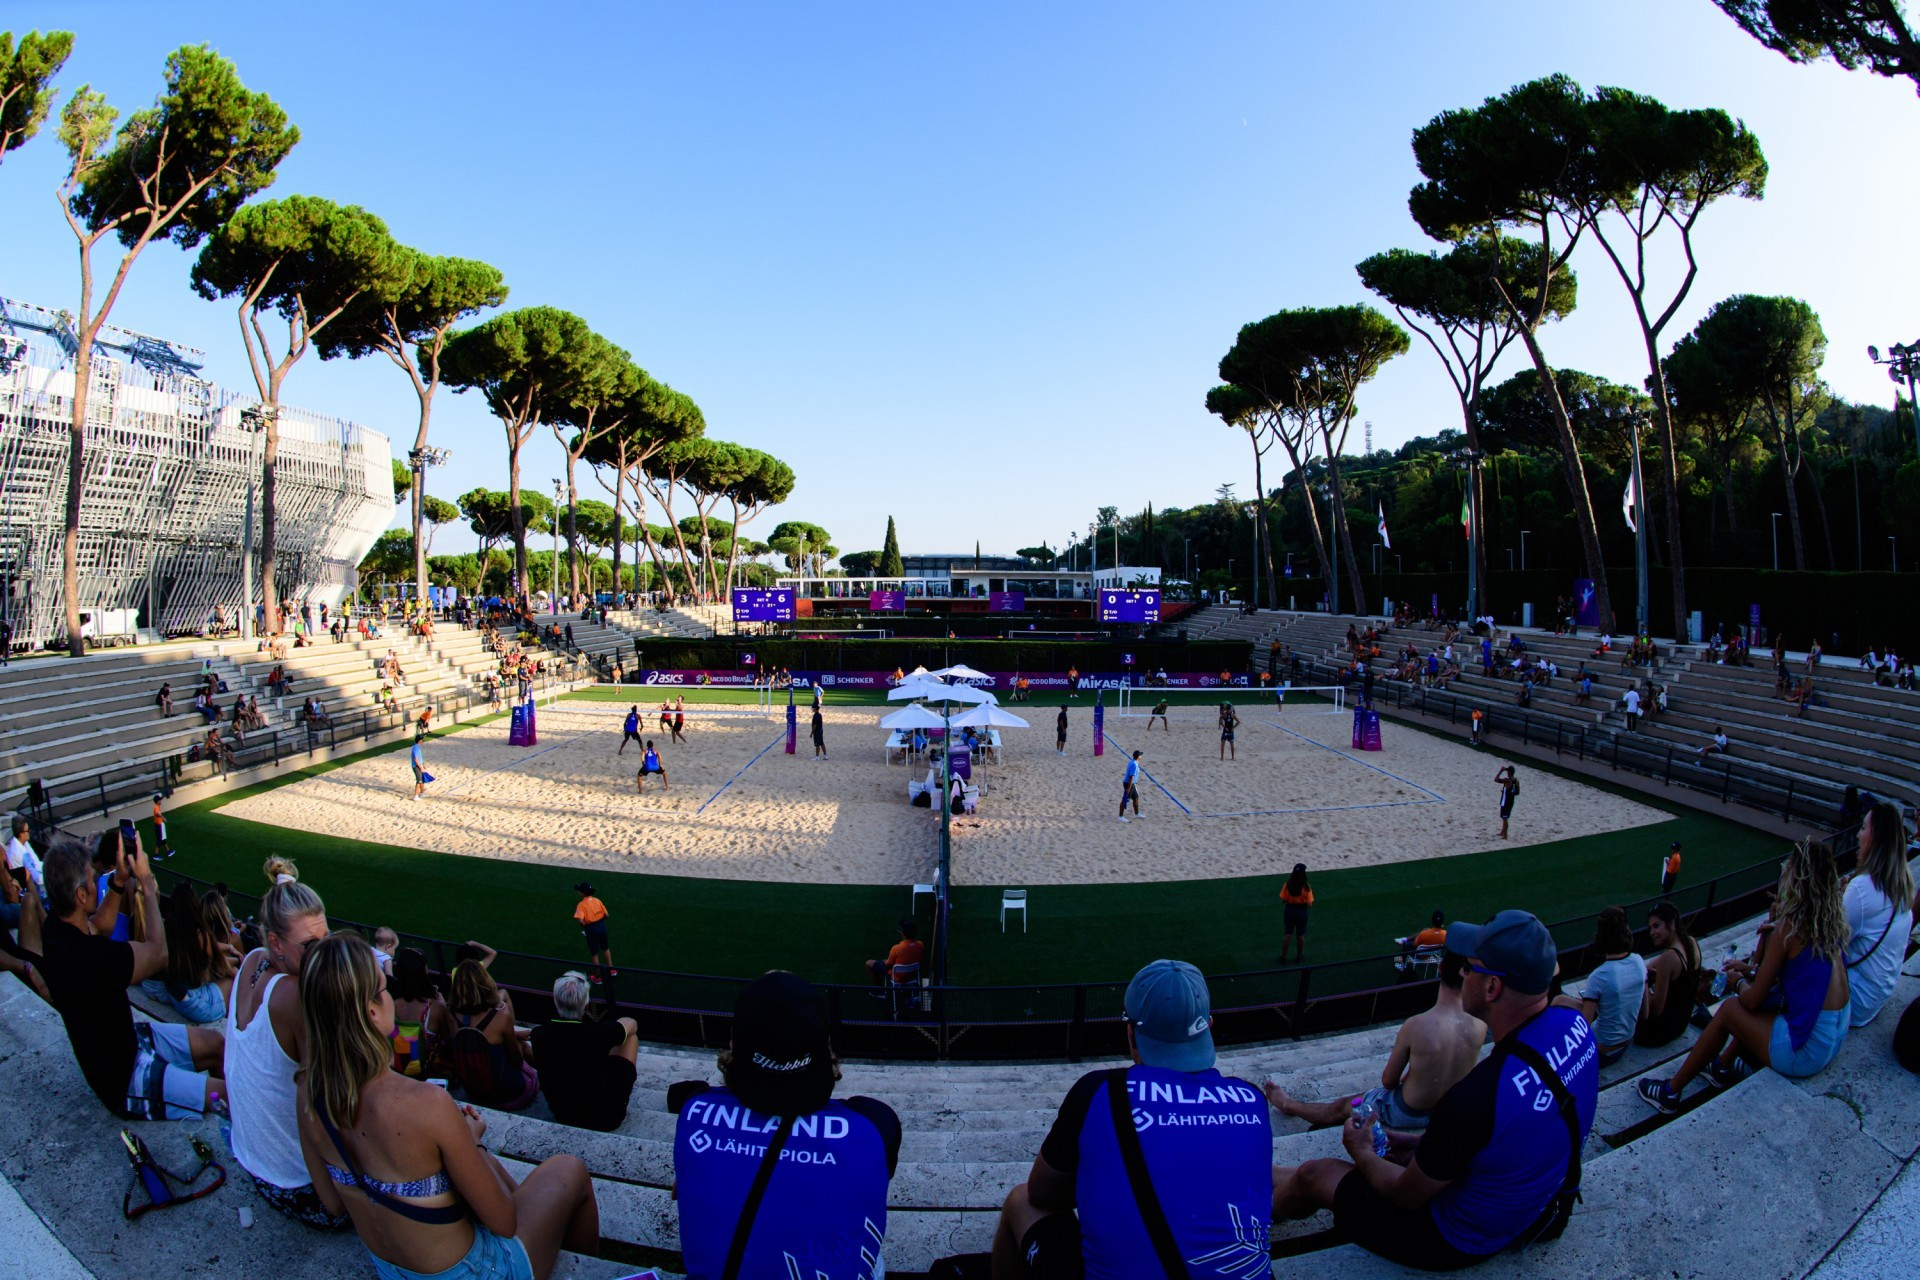 Rome hosted the 2019 World Tour Finals last September